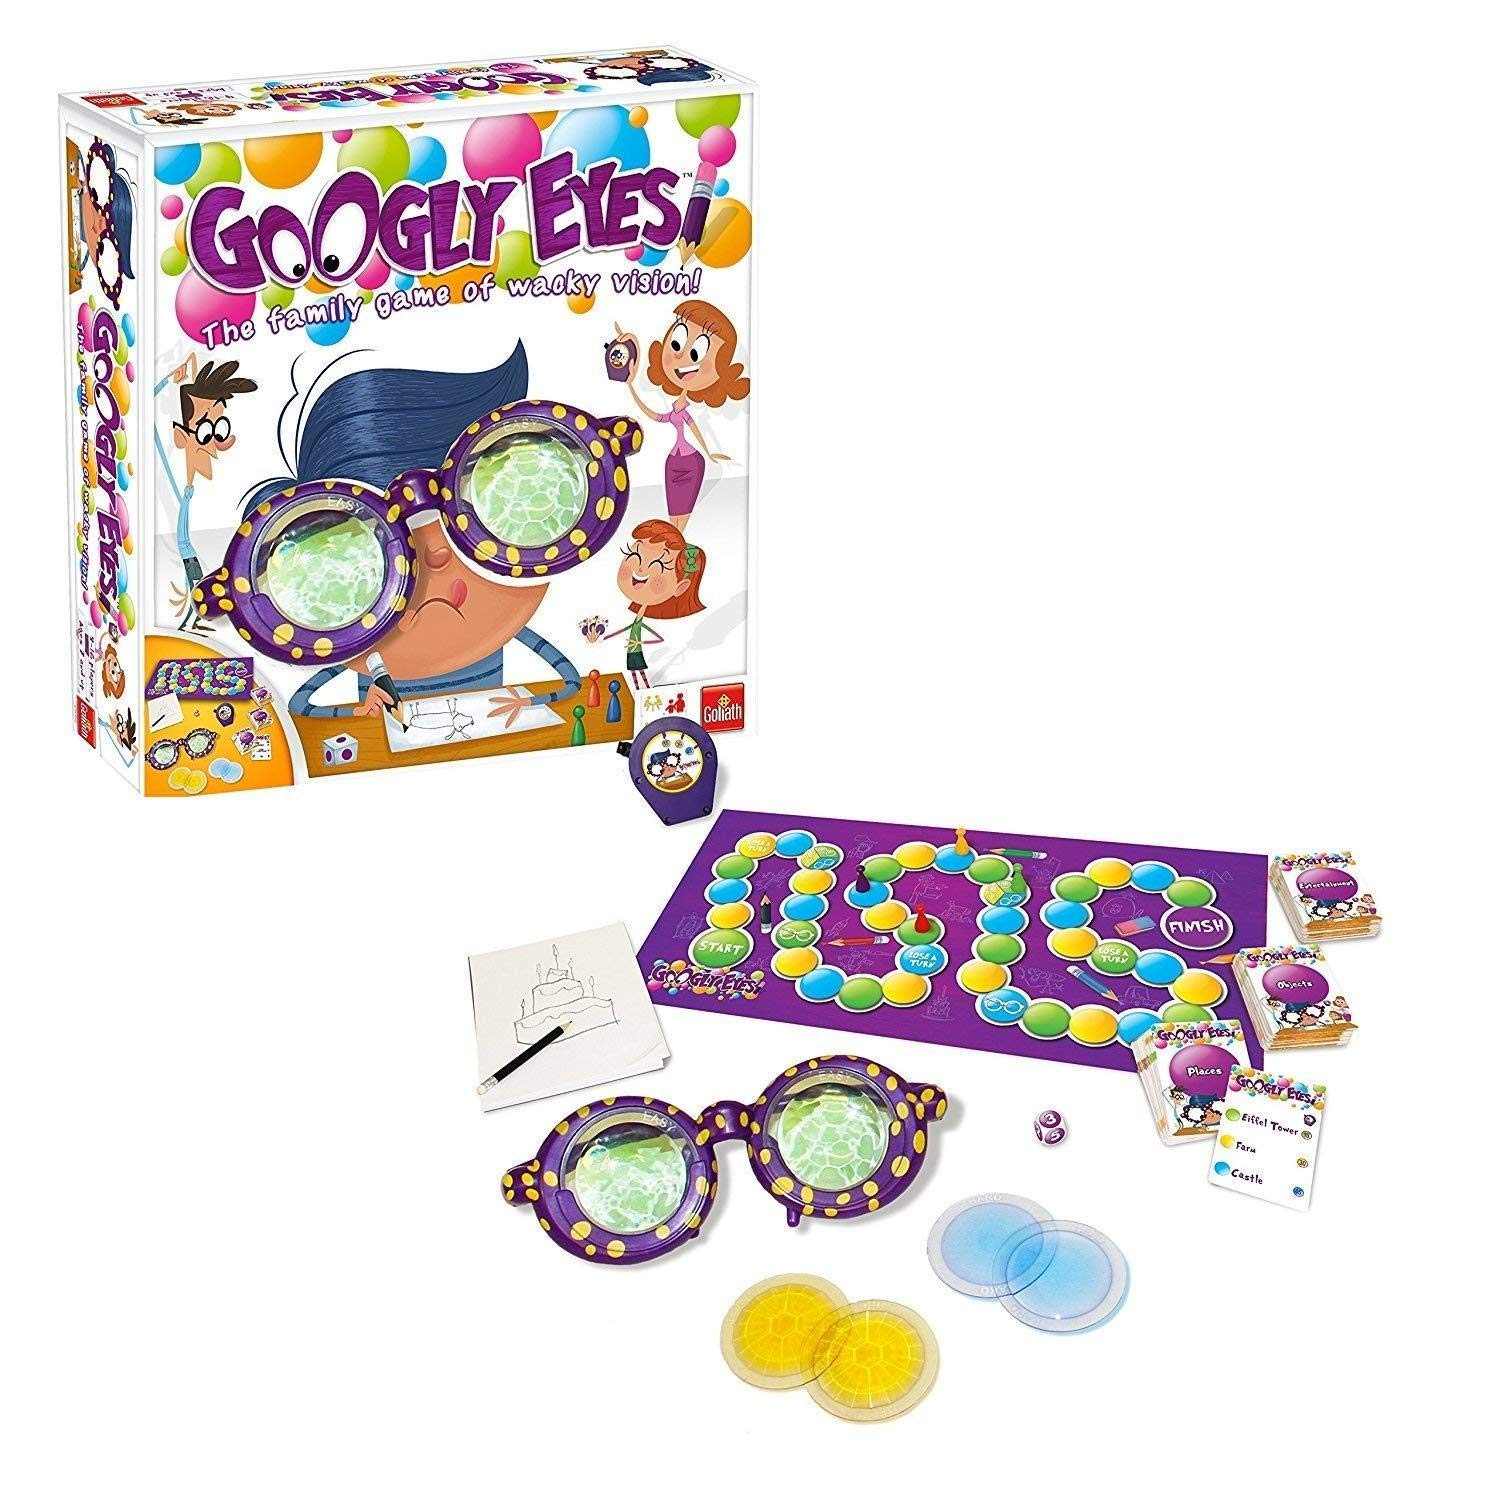 drawing game google Googly Eyes Game Family Drawing Game With Crazy Vision Altering Glasses